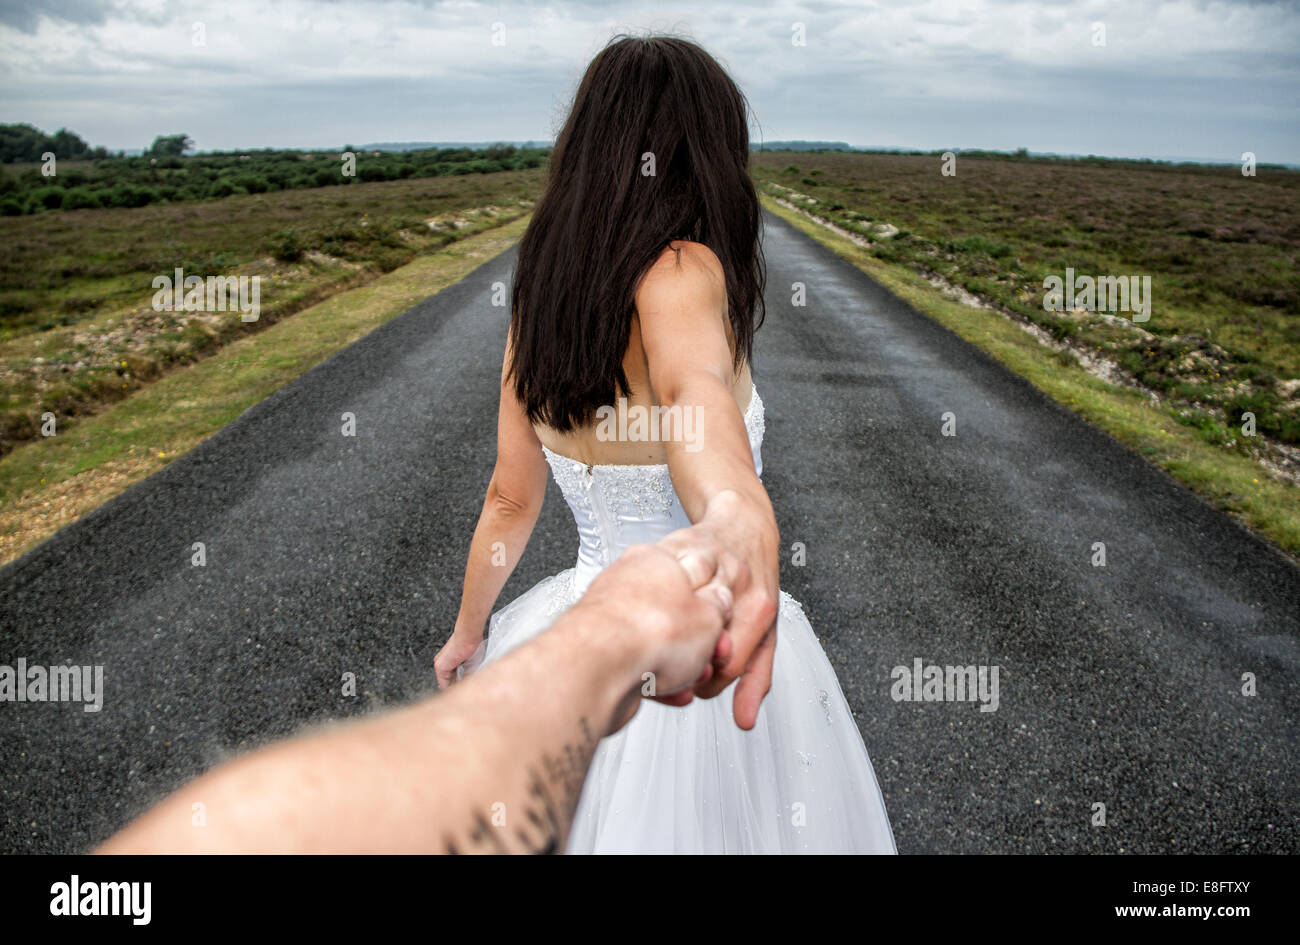 View of couple on long road - Stock Image